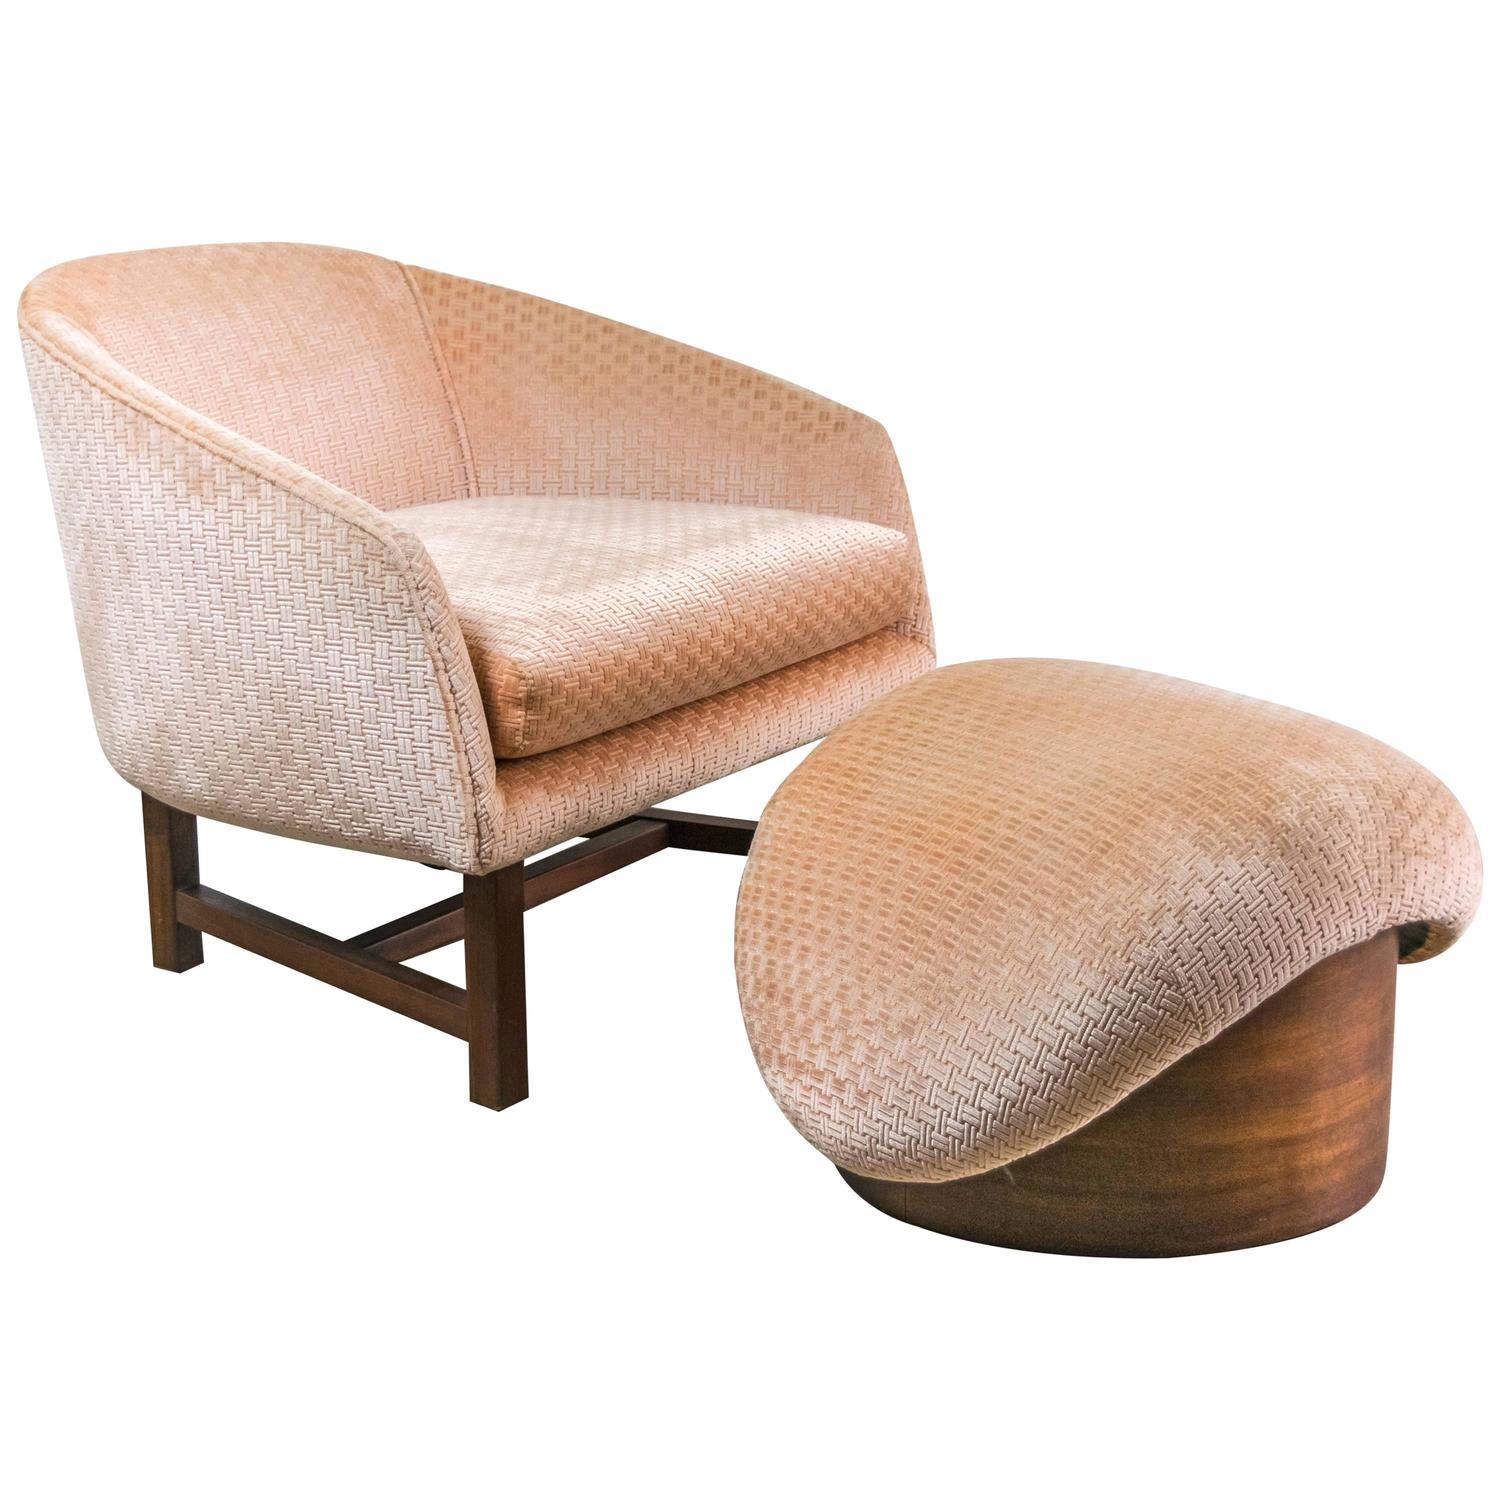 Mid century modern reading chair and ottoman at 1stdibs for Modern sofa chair